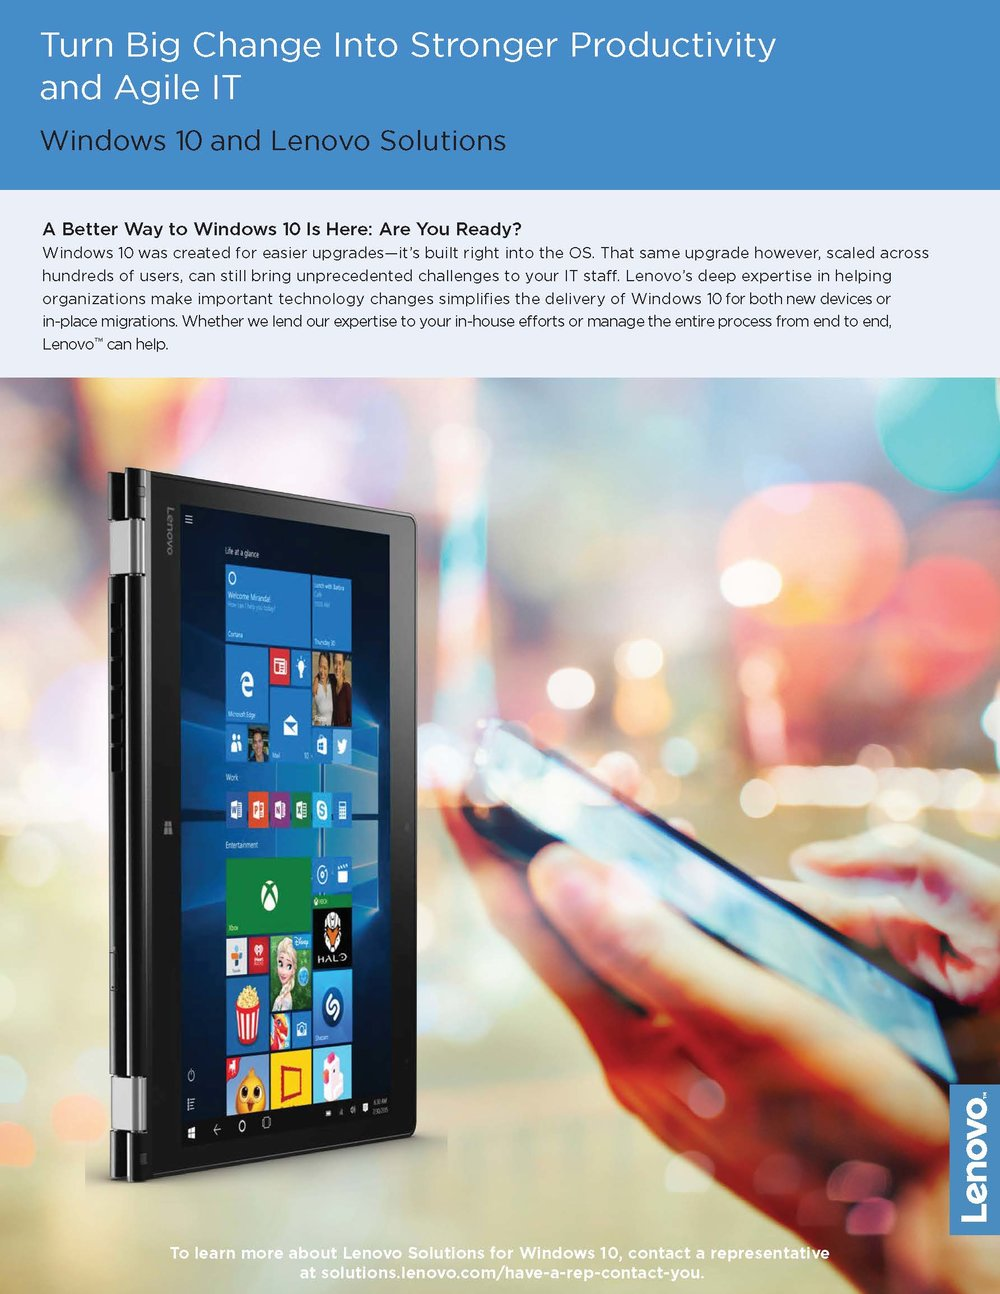 LEN_0816_1468_WW_Windows10 Migration Solutions Flyer_SH_4.4_Page_1.jpg